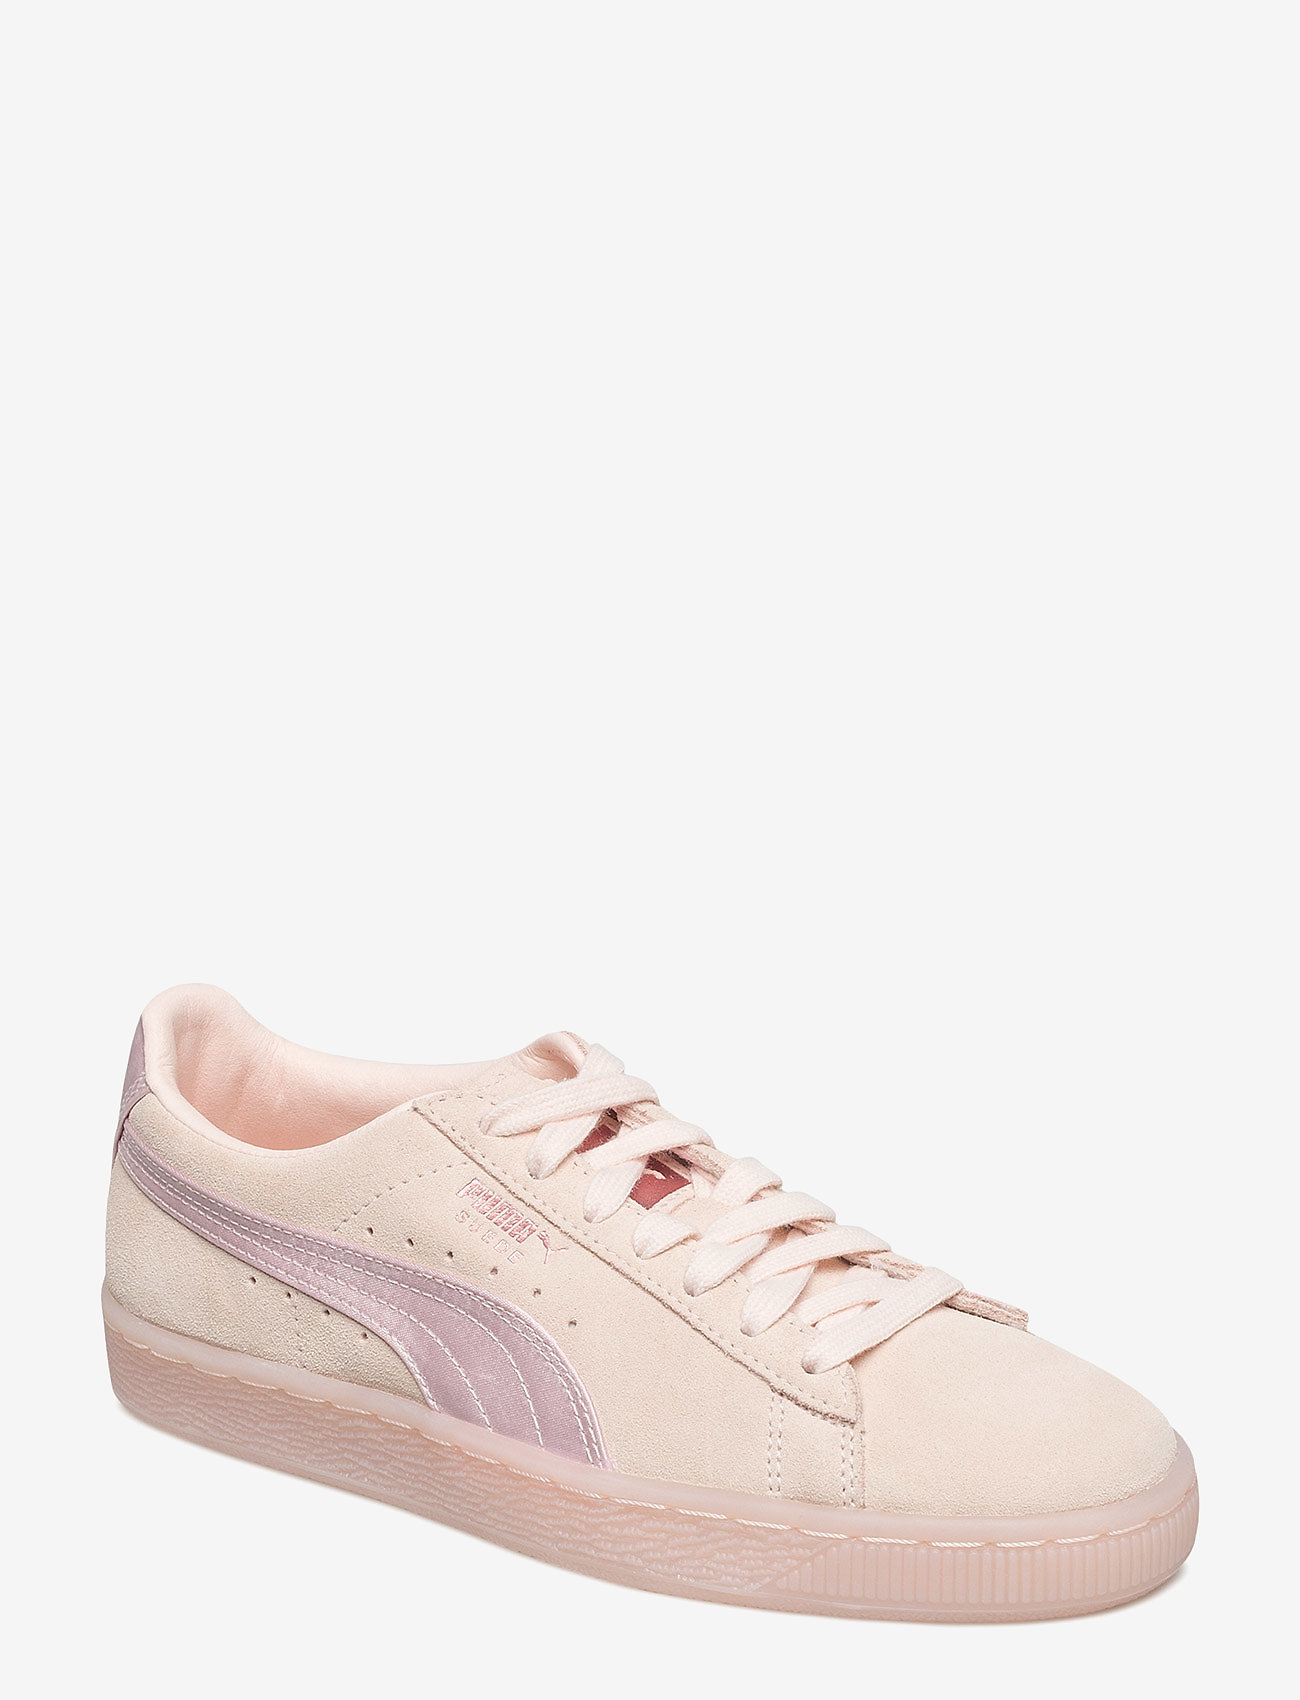 puma suede satin rose